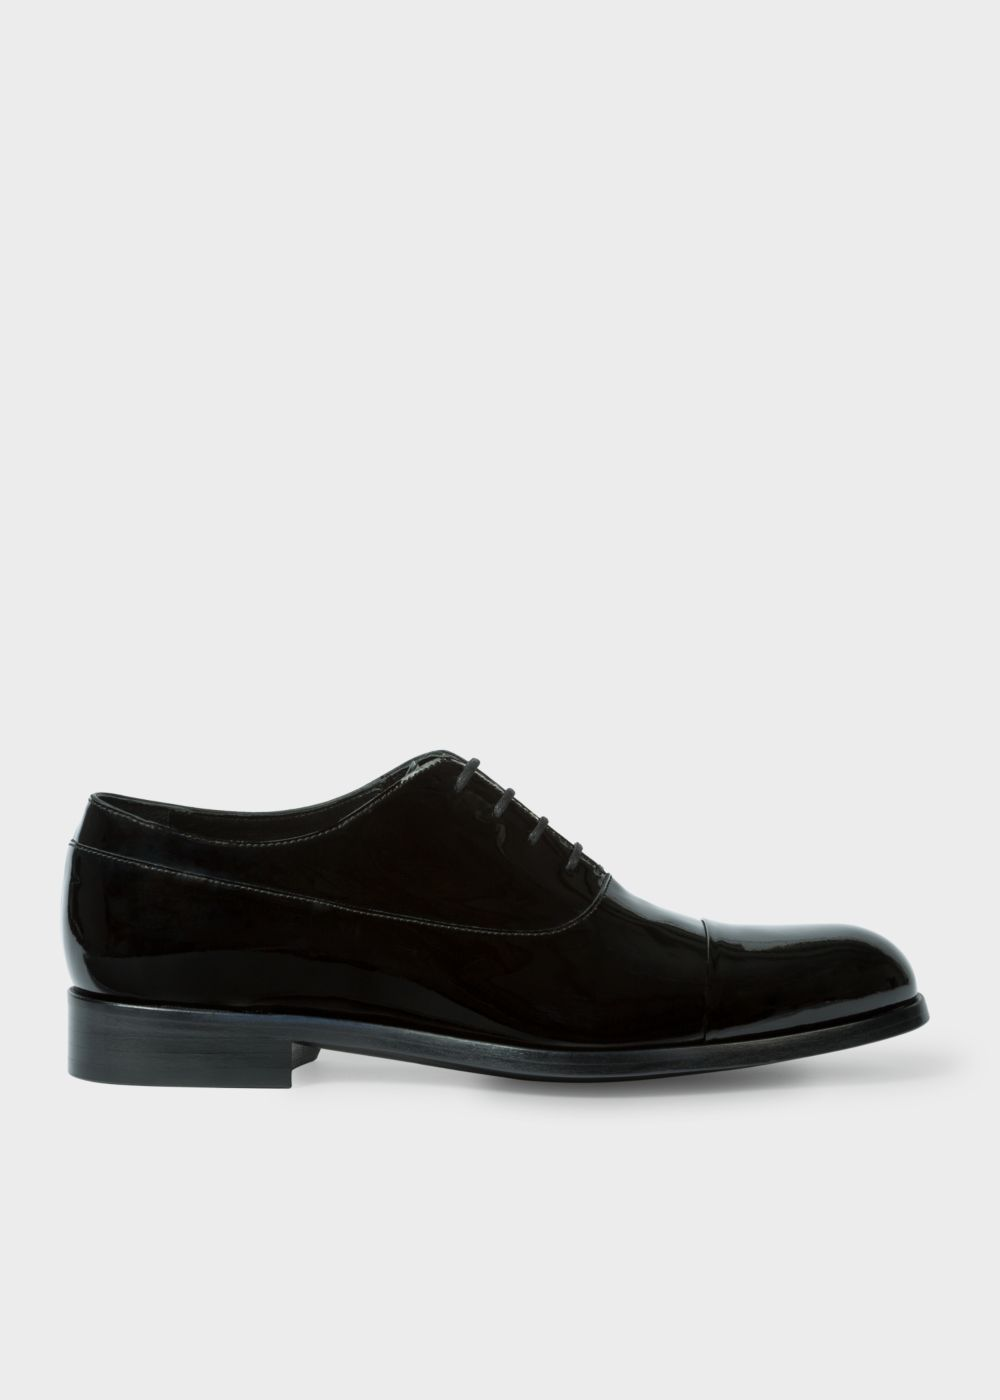 Paul Smith Men's Black Patent-Leather 'Noble' Oxford Shoes